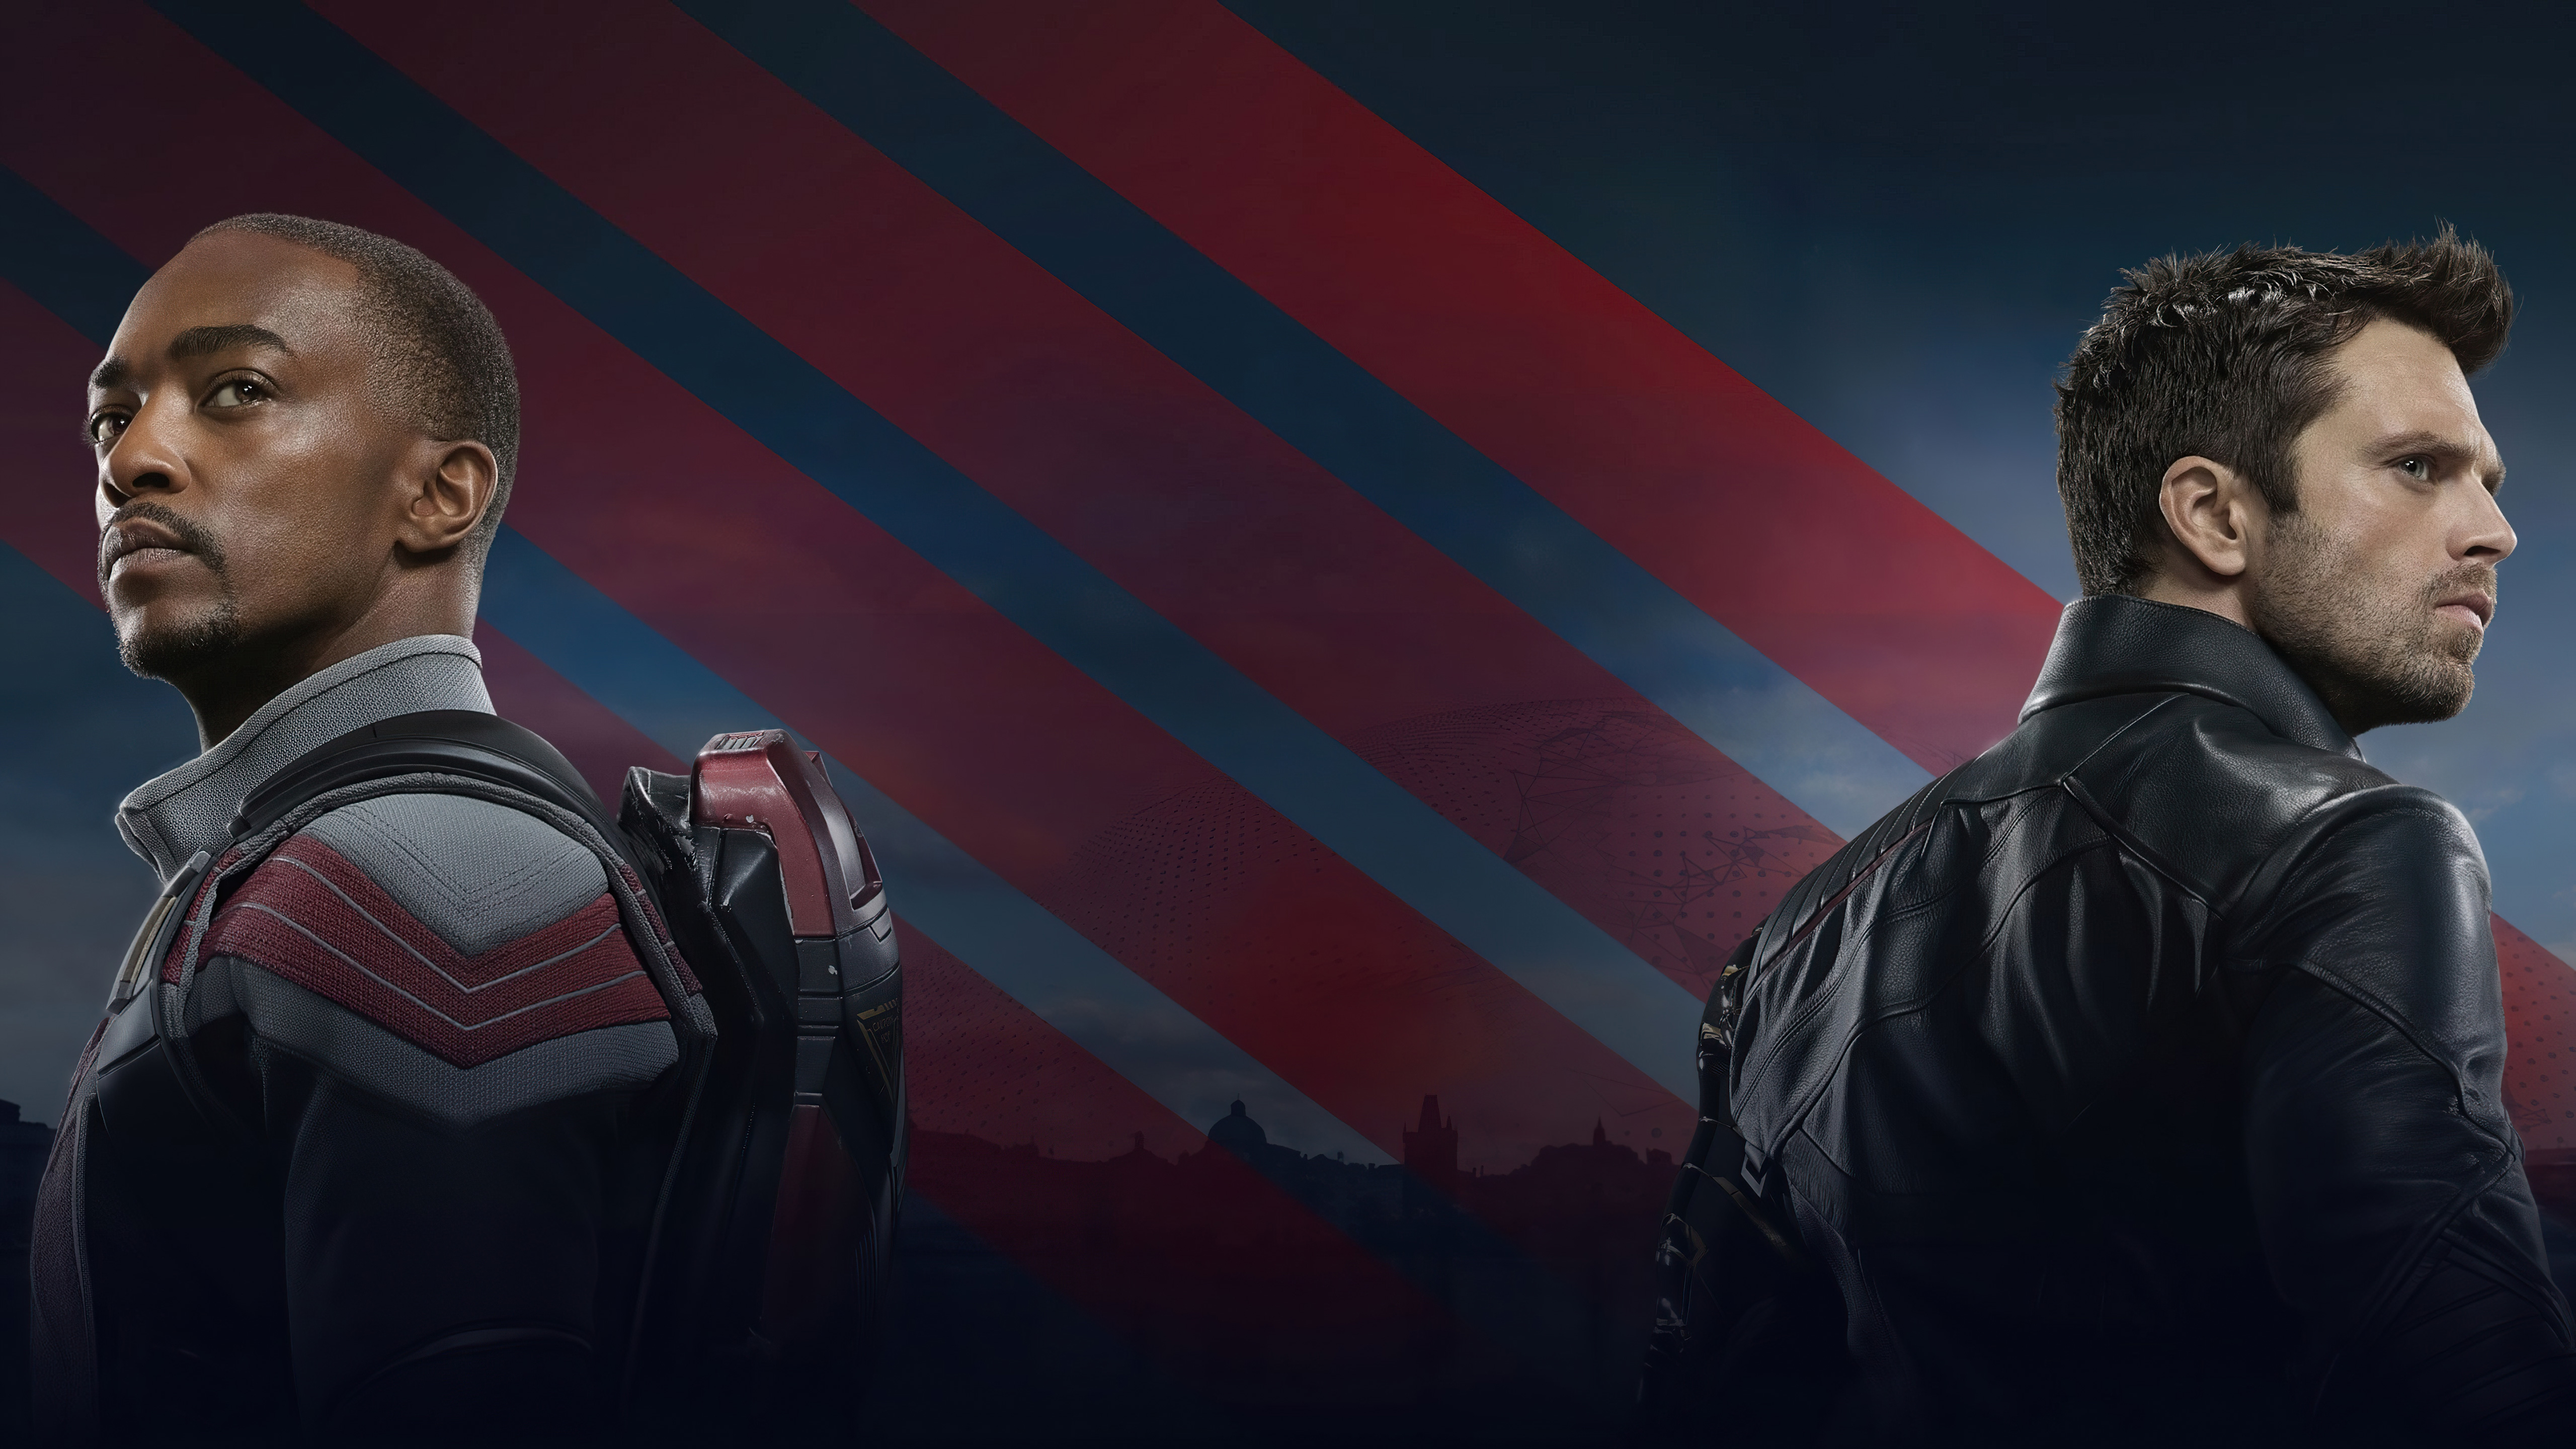 Wallpaper Characters The Falcon and the Winter Soldier